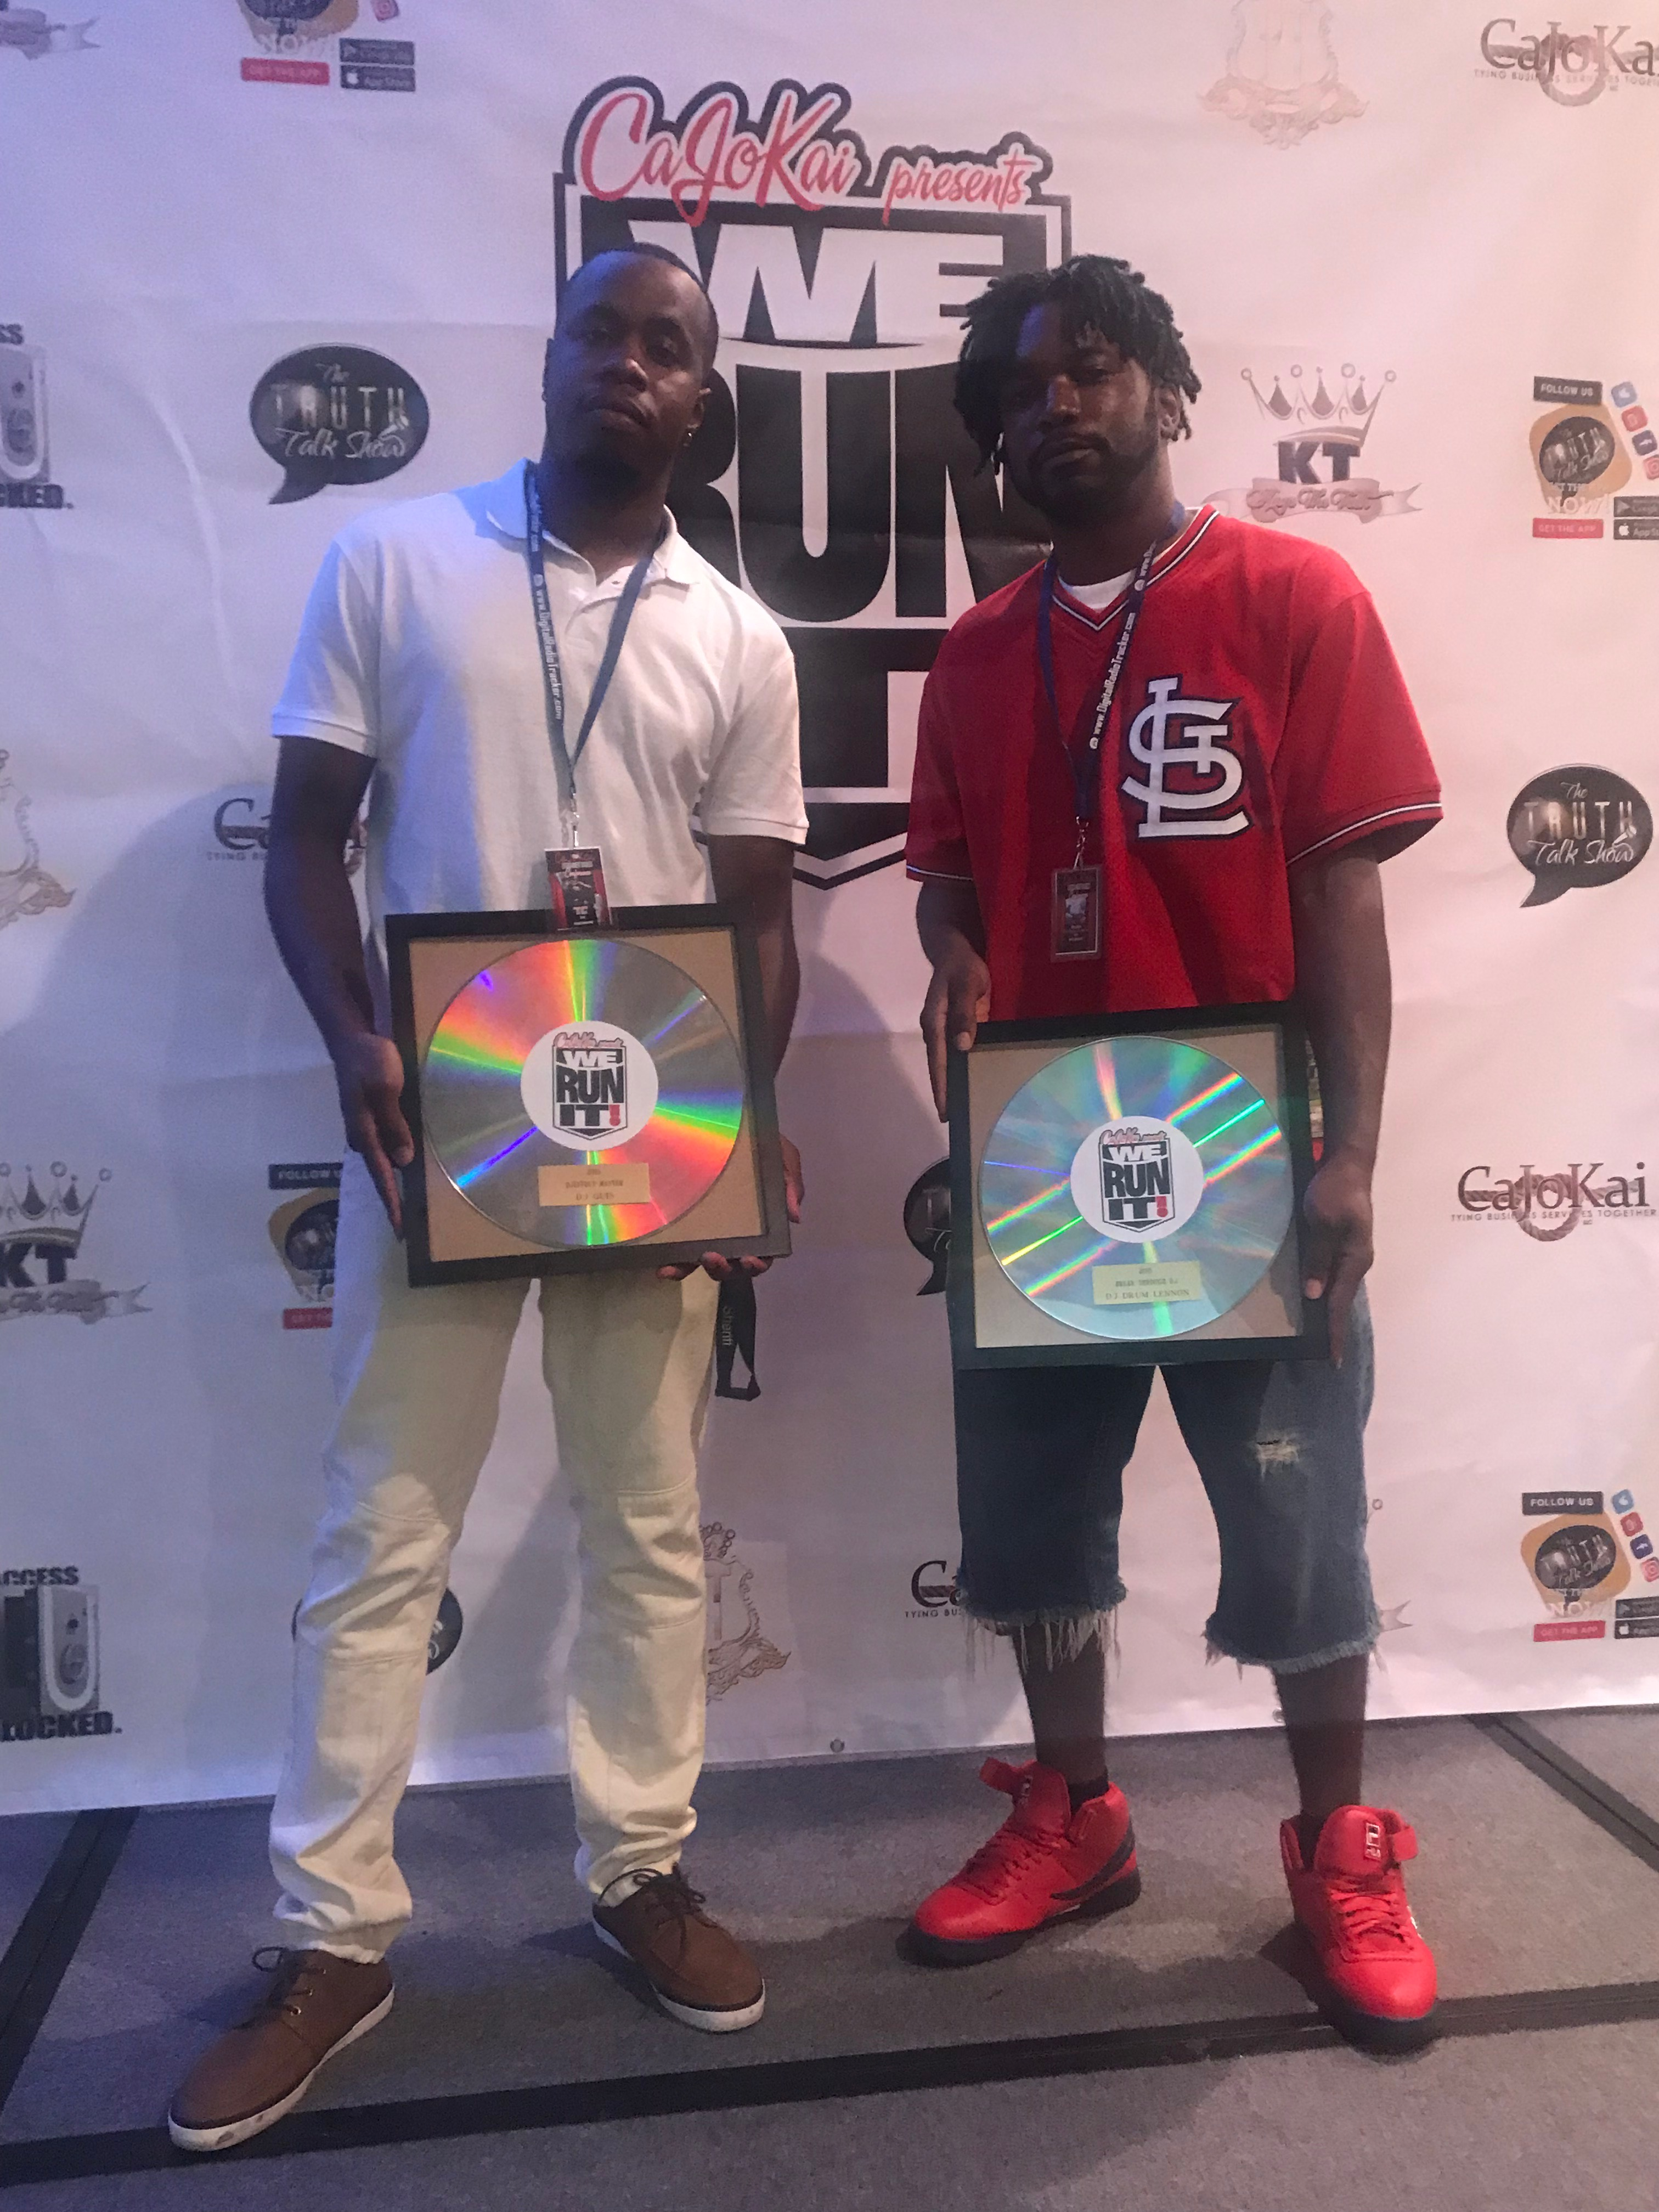 #awards, awards, #BET, BET, #MTV, MTV, #VH1, VH1, #Puretruthllc, pure truth llc, #puretruthdjs, #puretruthdjs, #radio, #conference, conference, #SXSW, SXSW, #A3c, A3c, #Puretruth, Pure Truth, #djs, dj, Artists, #artists, #music, music. #puretruthtv, pure truth tv, DJ Quis, #DJQuis, #DJDrumLennon, DJ Drum Lennon,